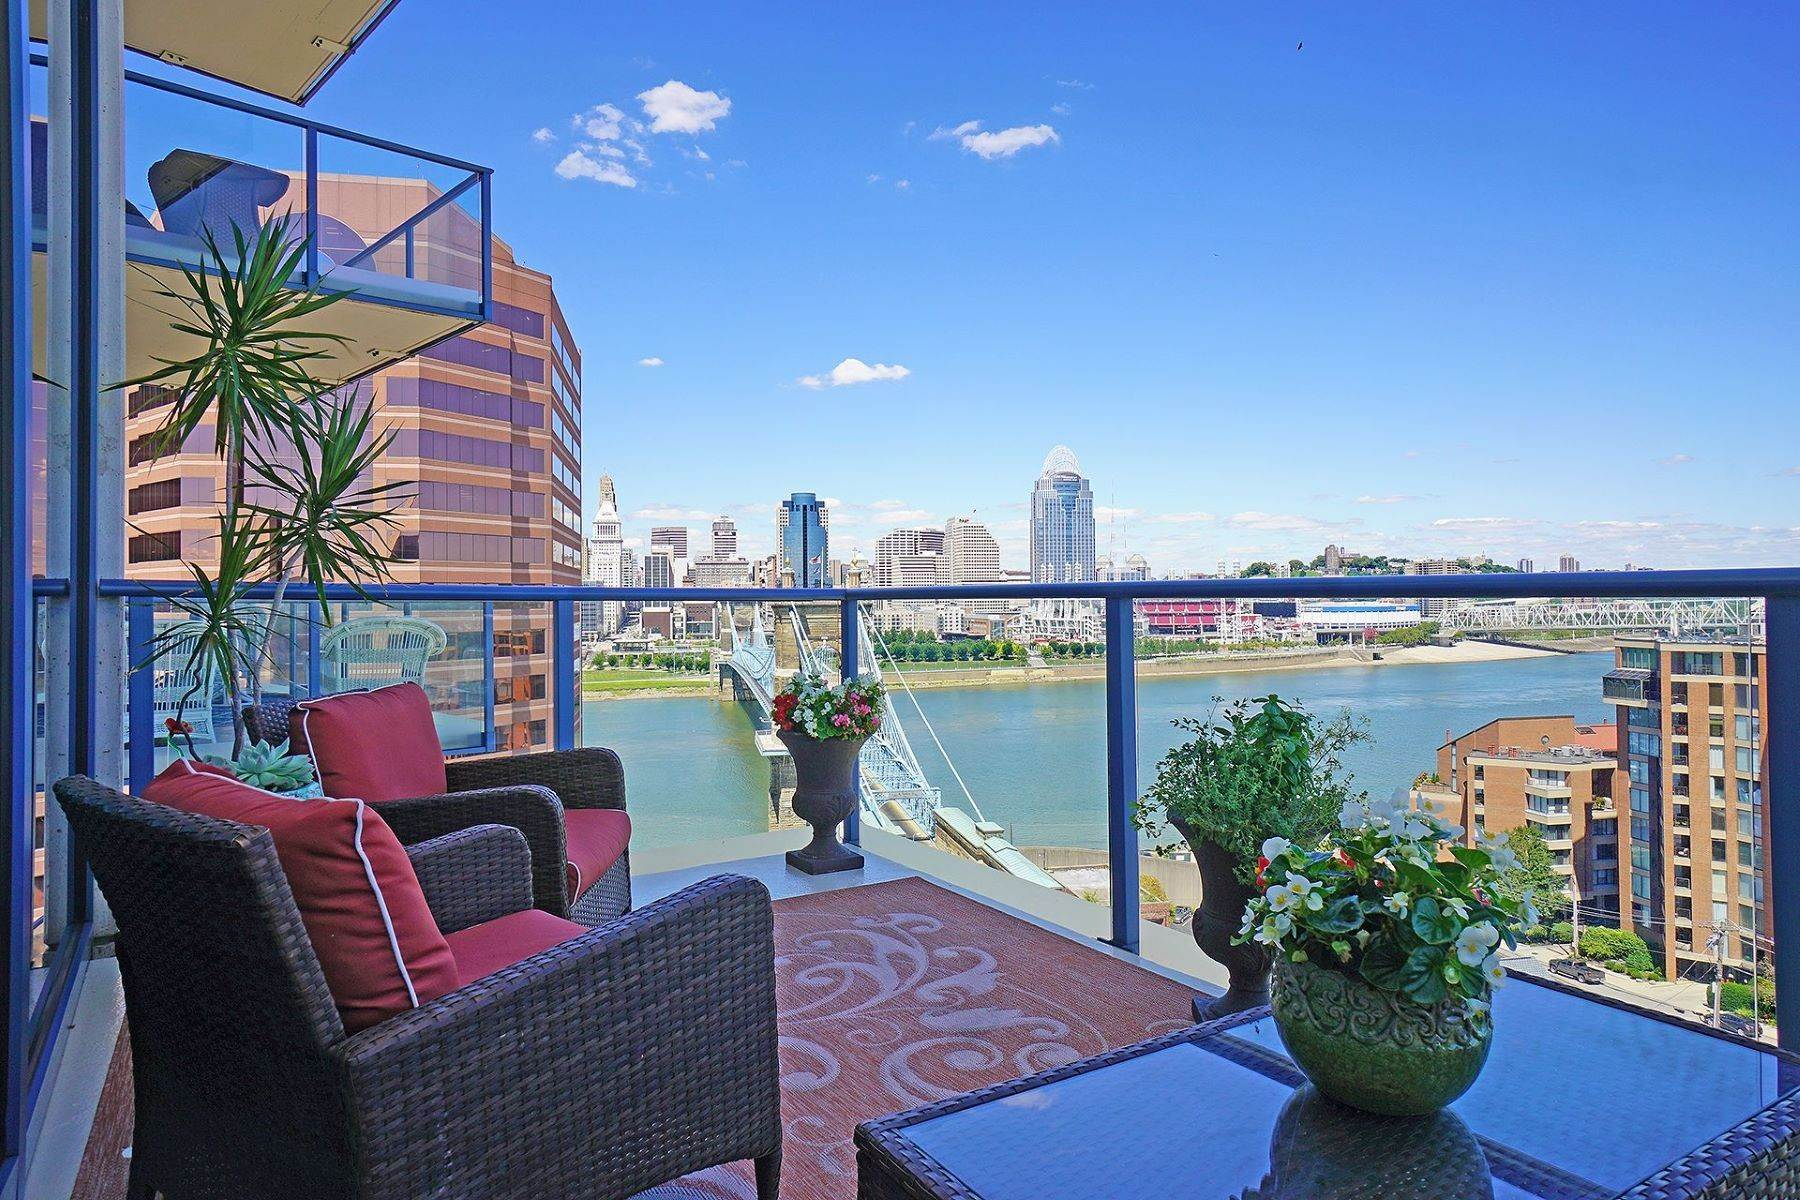 5. Condominiums for Sale at 1 Roebling Way #1105, Covington, KY 41011 1 Roebling Way #1105 Covington, Kentucky 41011 United States